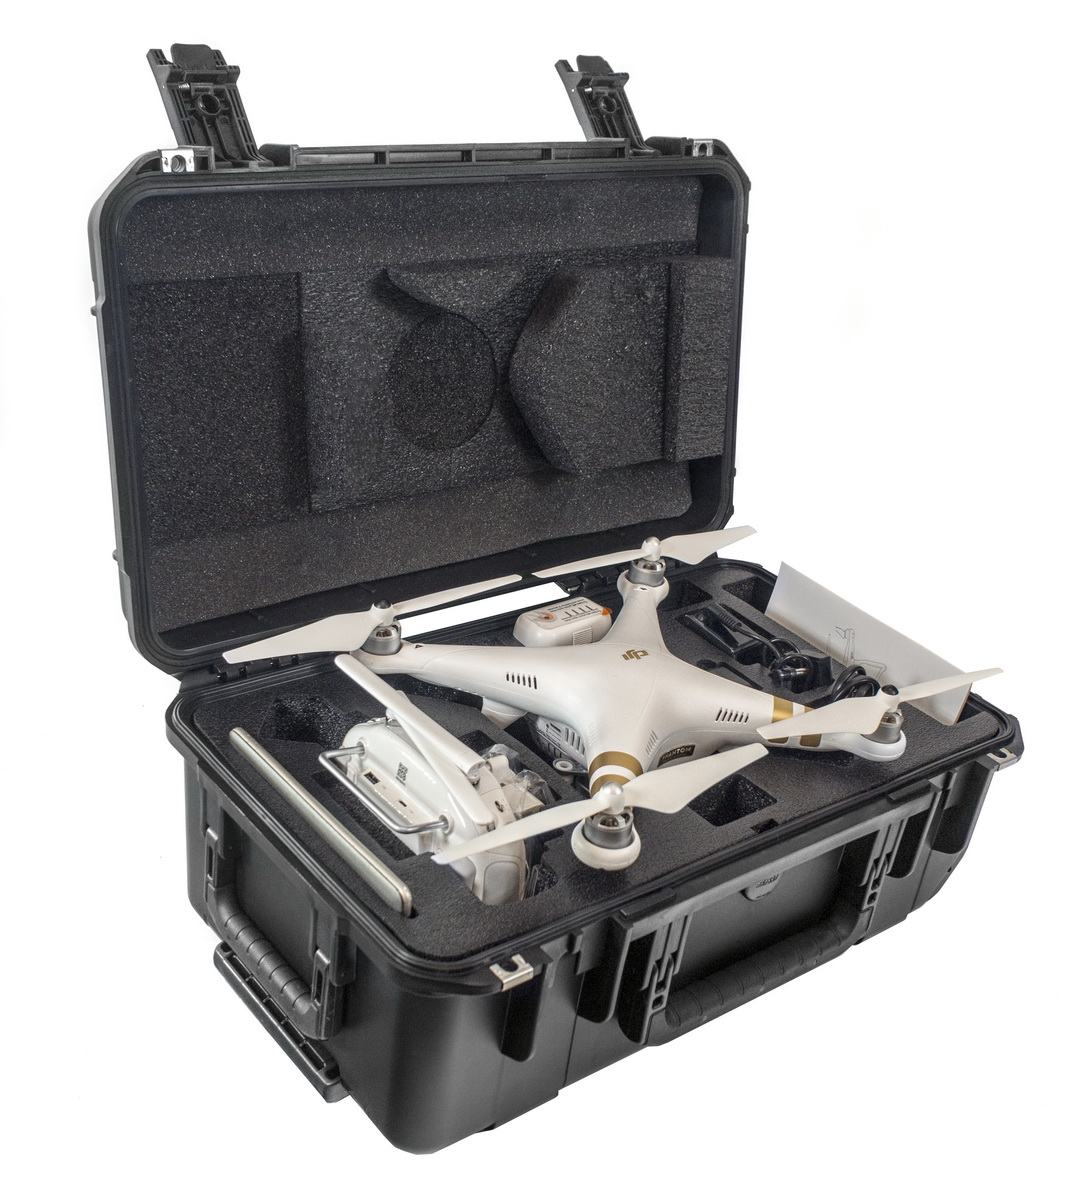 military drone size with Casepro Dji Phantom 3 Drone Carry On Hard Case Cp Phan3 Co on Ants Worlds Largest Biggest Animatronic Robotic Jaws Insectronics additionally mercial Uav Market Analysis 2017 8 additionally Millions Of Drones By 2025 And Million moreover Insect Inspiration Uk Defence Drone Mimics Dragonfly Flight as well Drone Market Analysis.